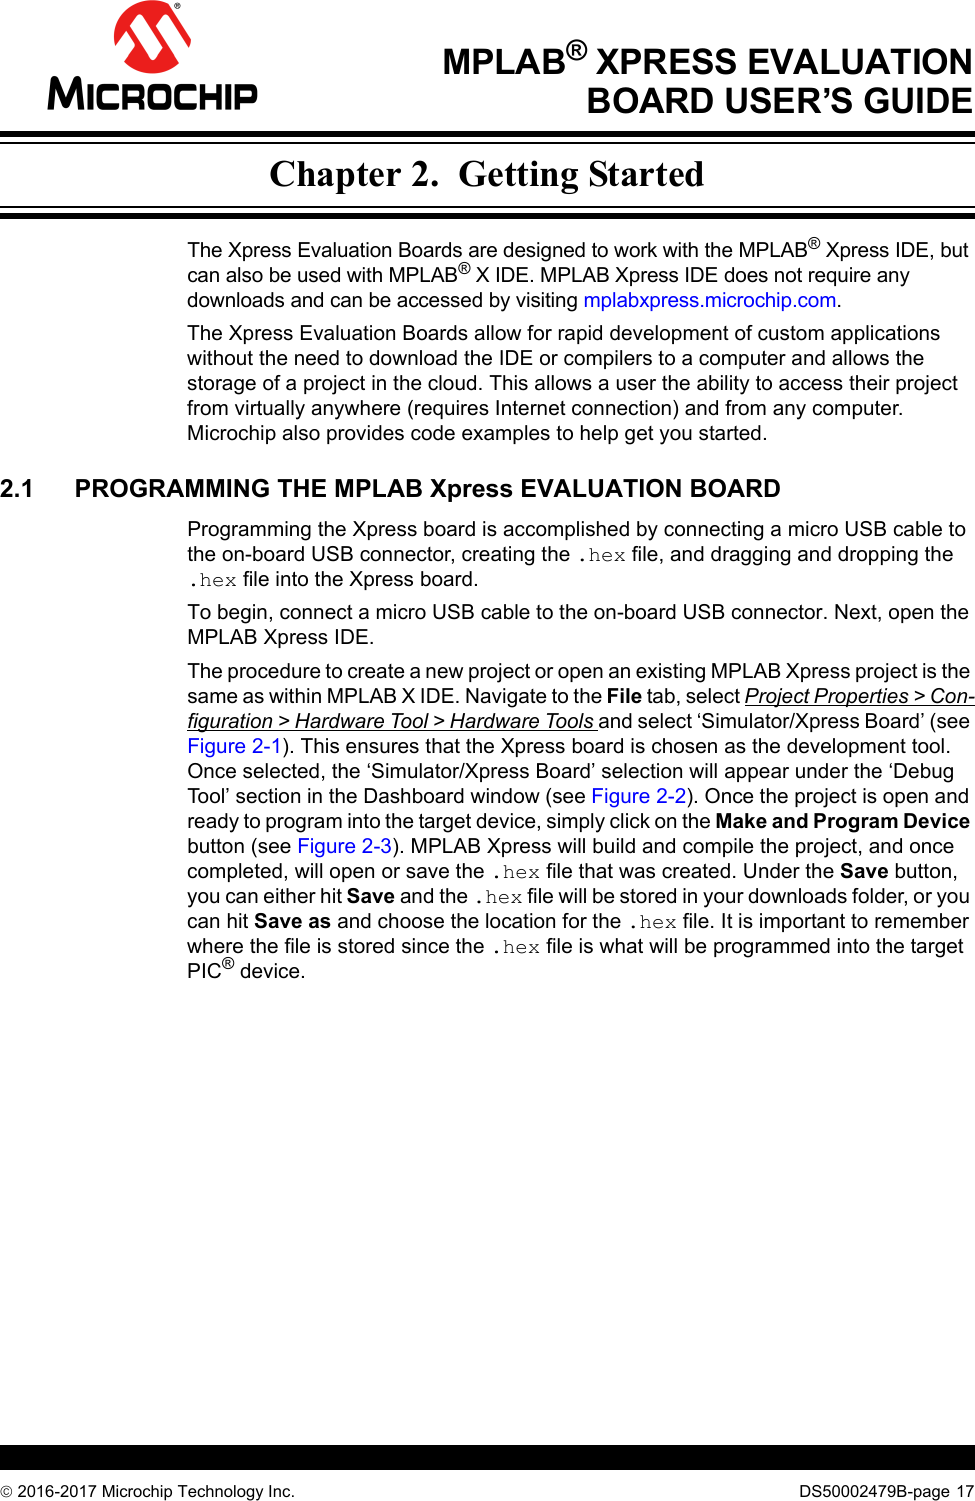 MPLAB Xpress Evaluation_Development Board User's Guide